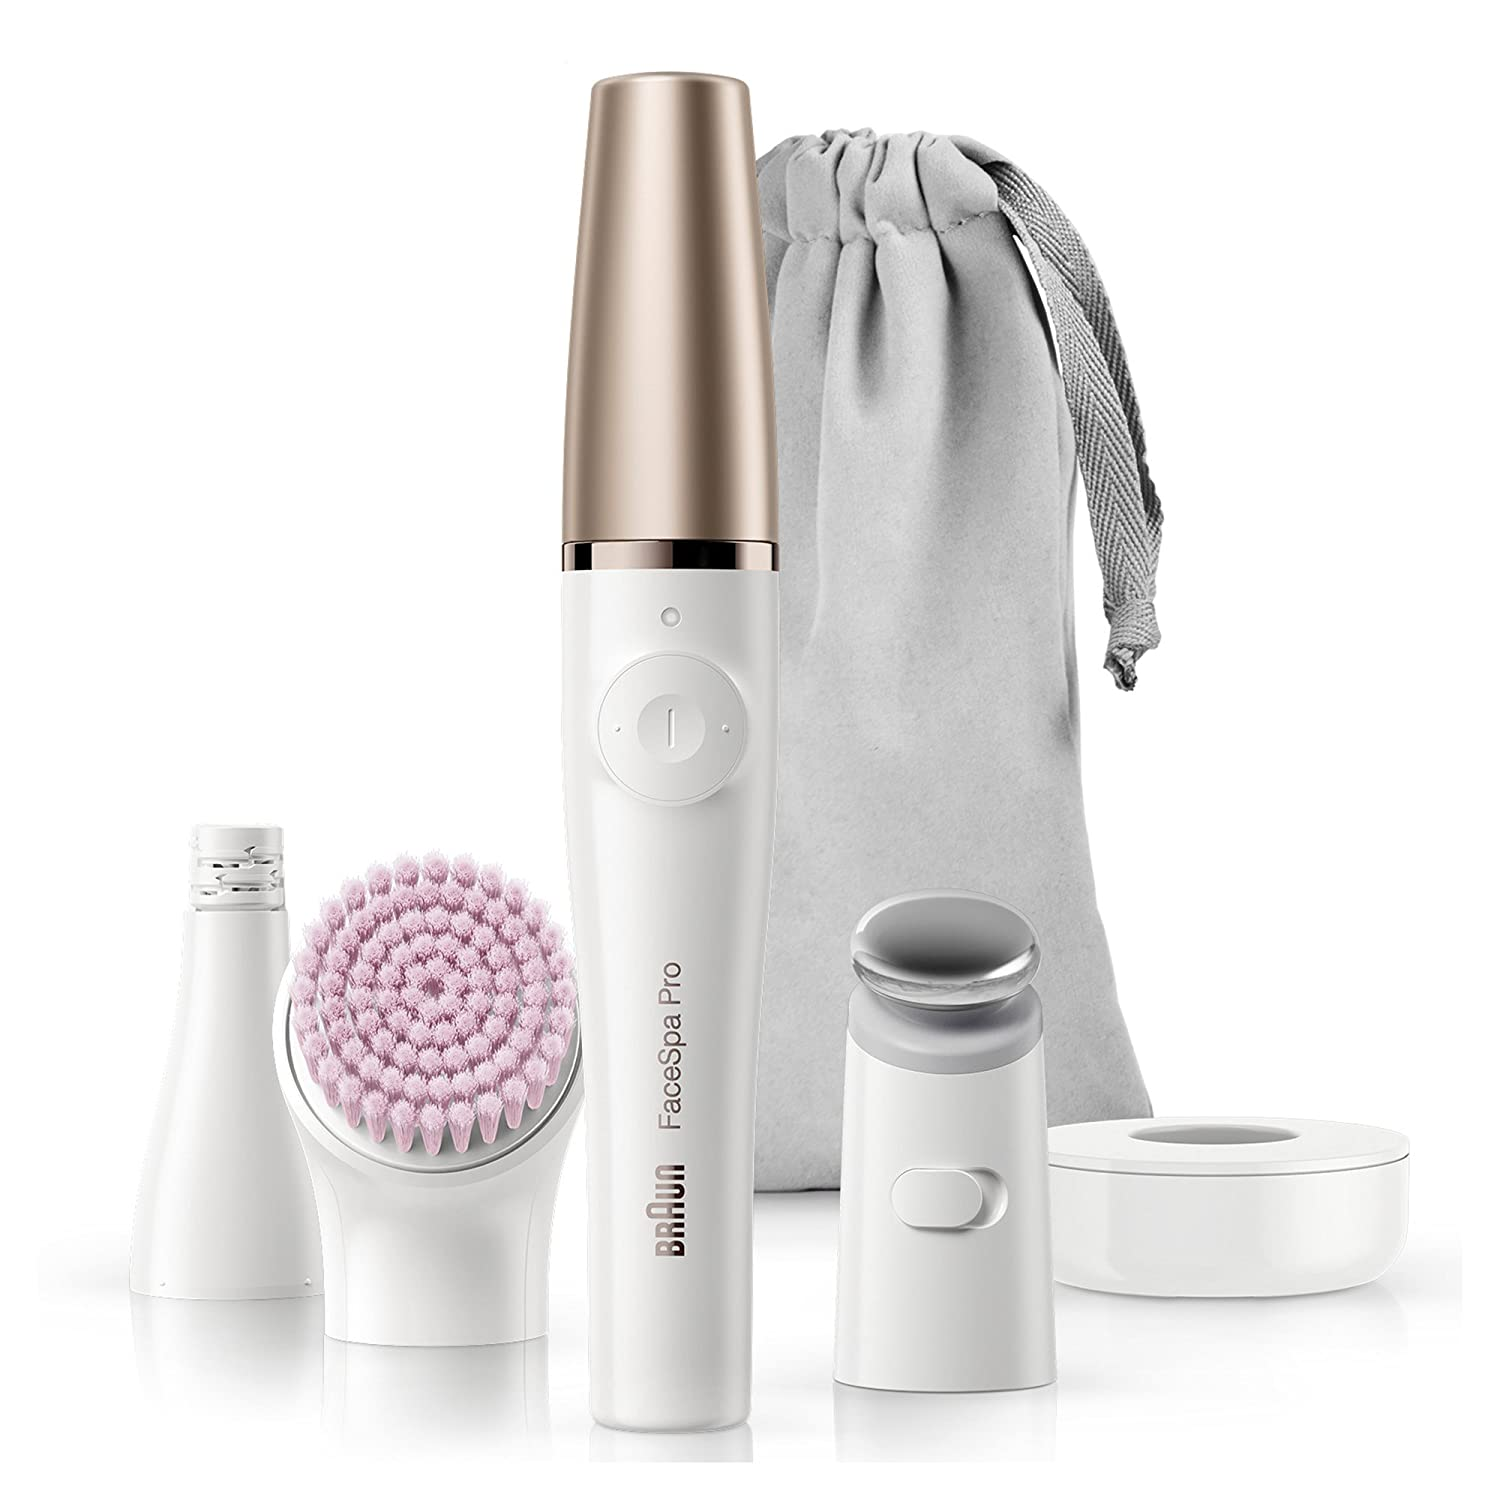 Braun FaceSpa Pro 912 Facial Epilator for Women, 3-in-1 Facial Epilating Cleansing and Skin Toning System with 3 Extras, White/Bronze Procter & Gamble 4210201185871